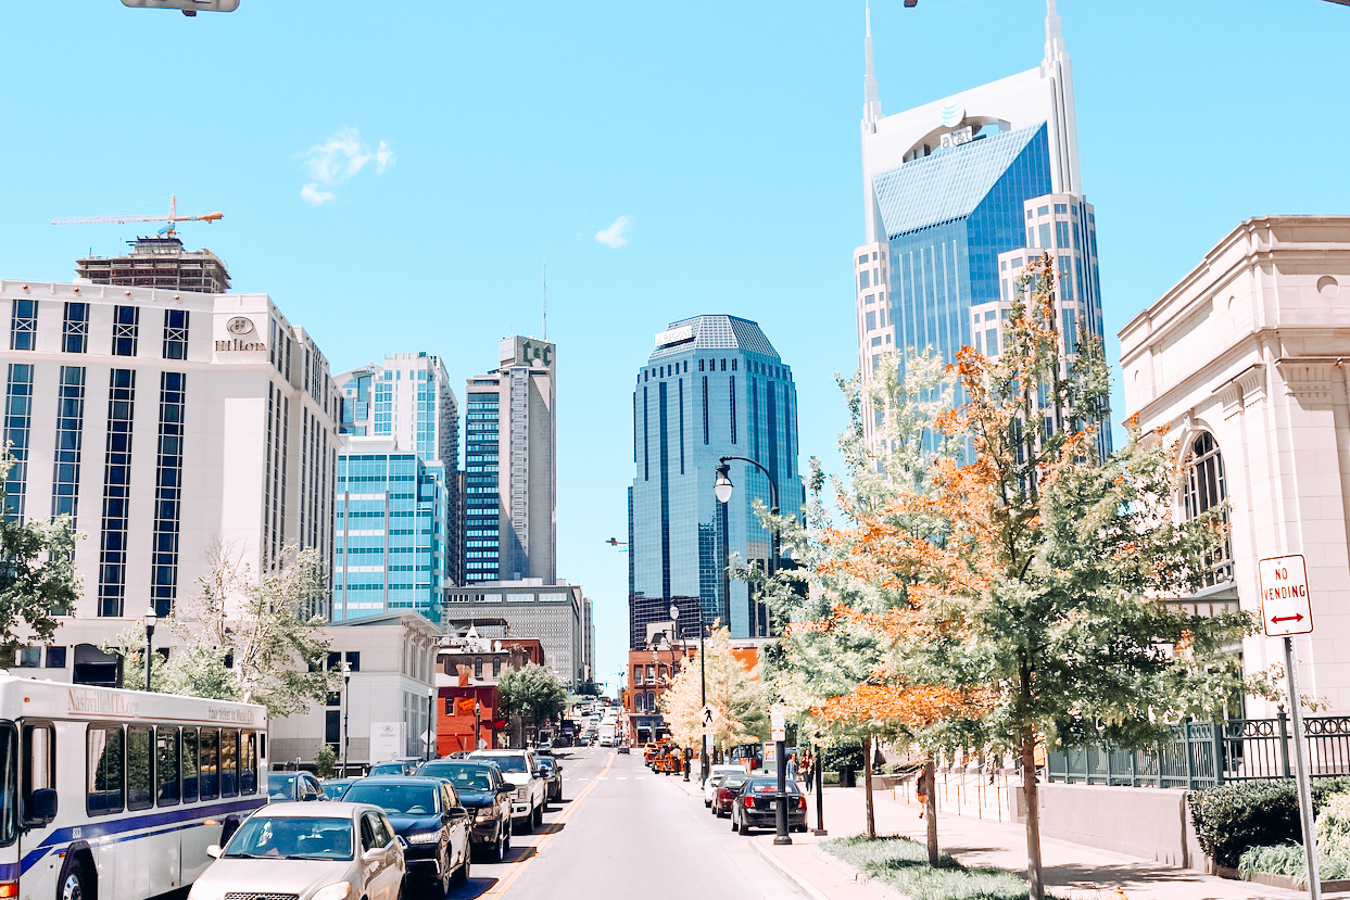 Street and buildings in Nashville